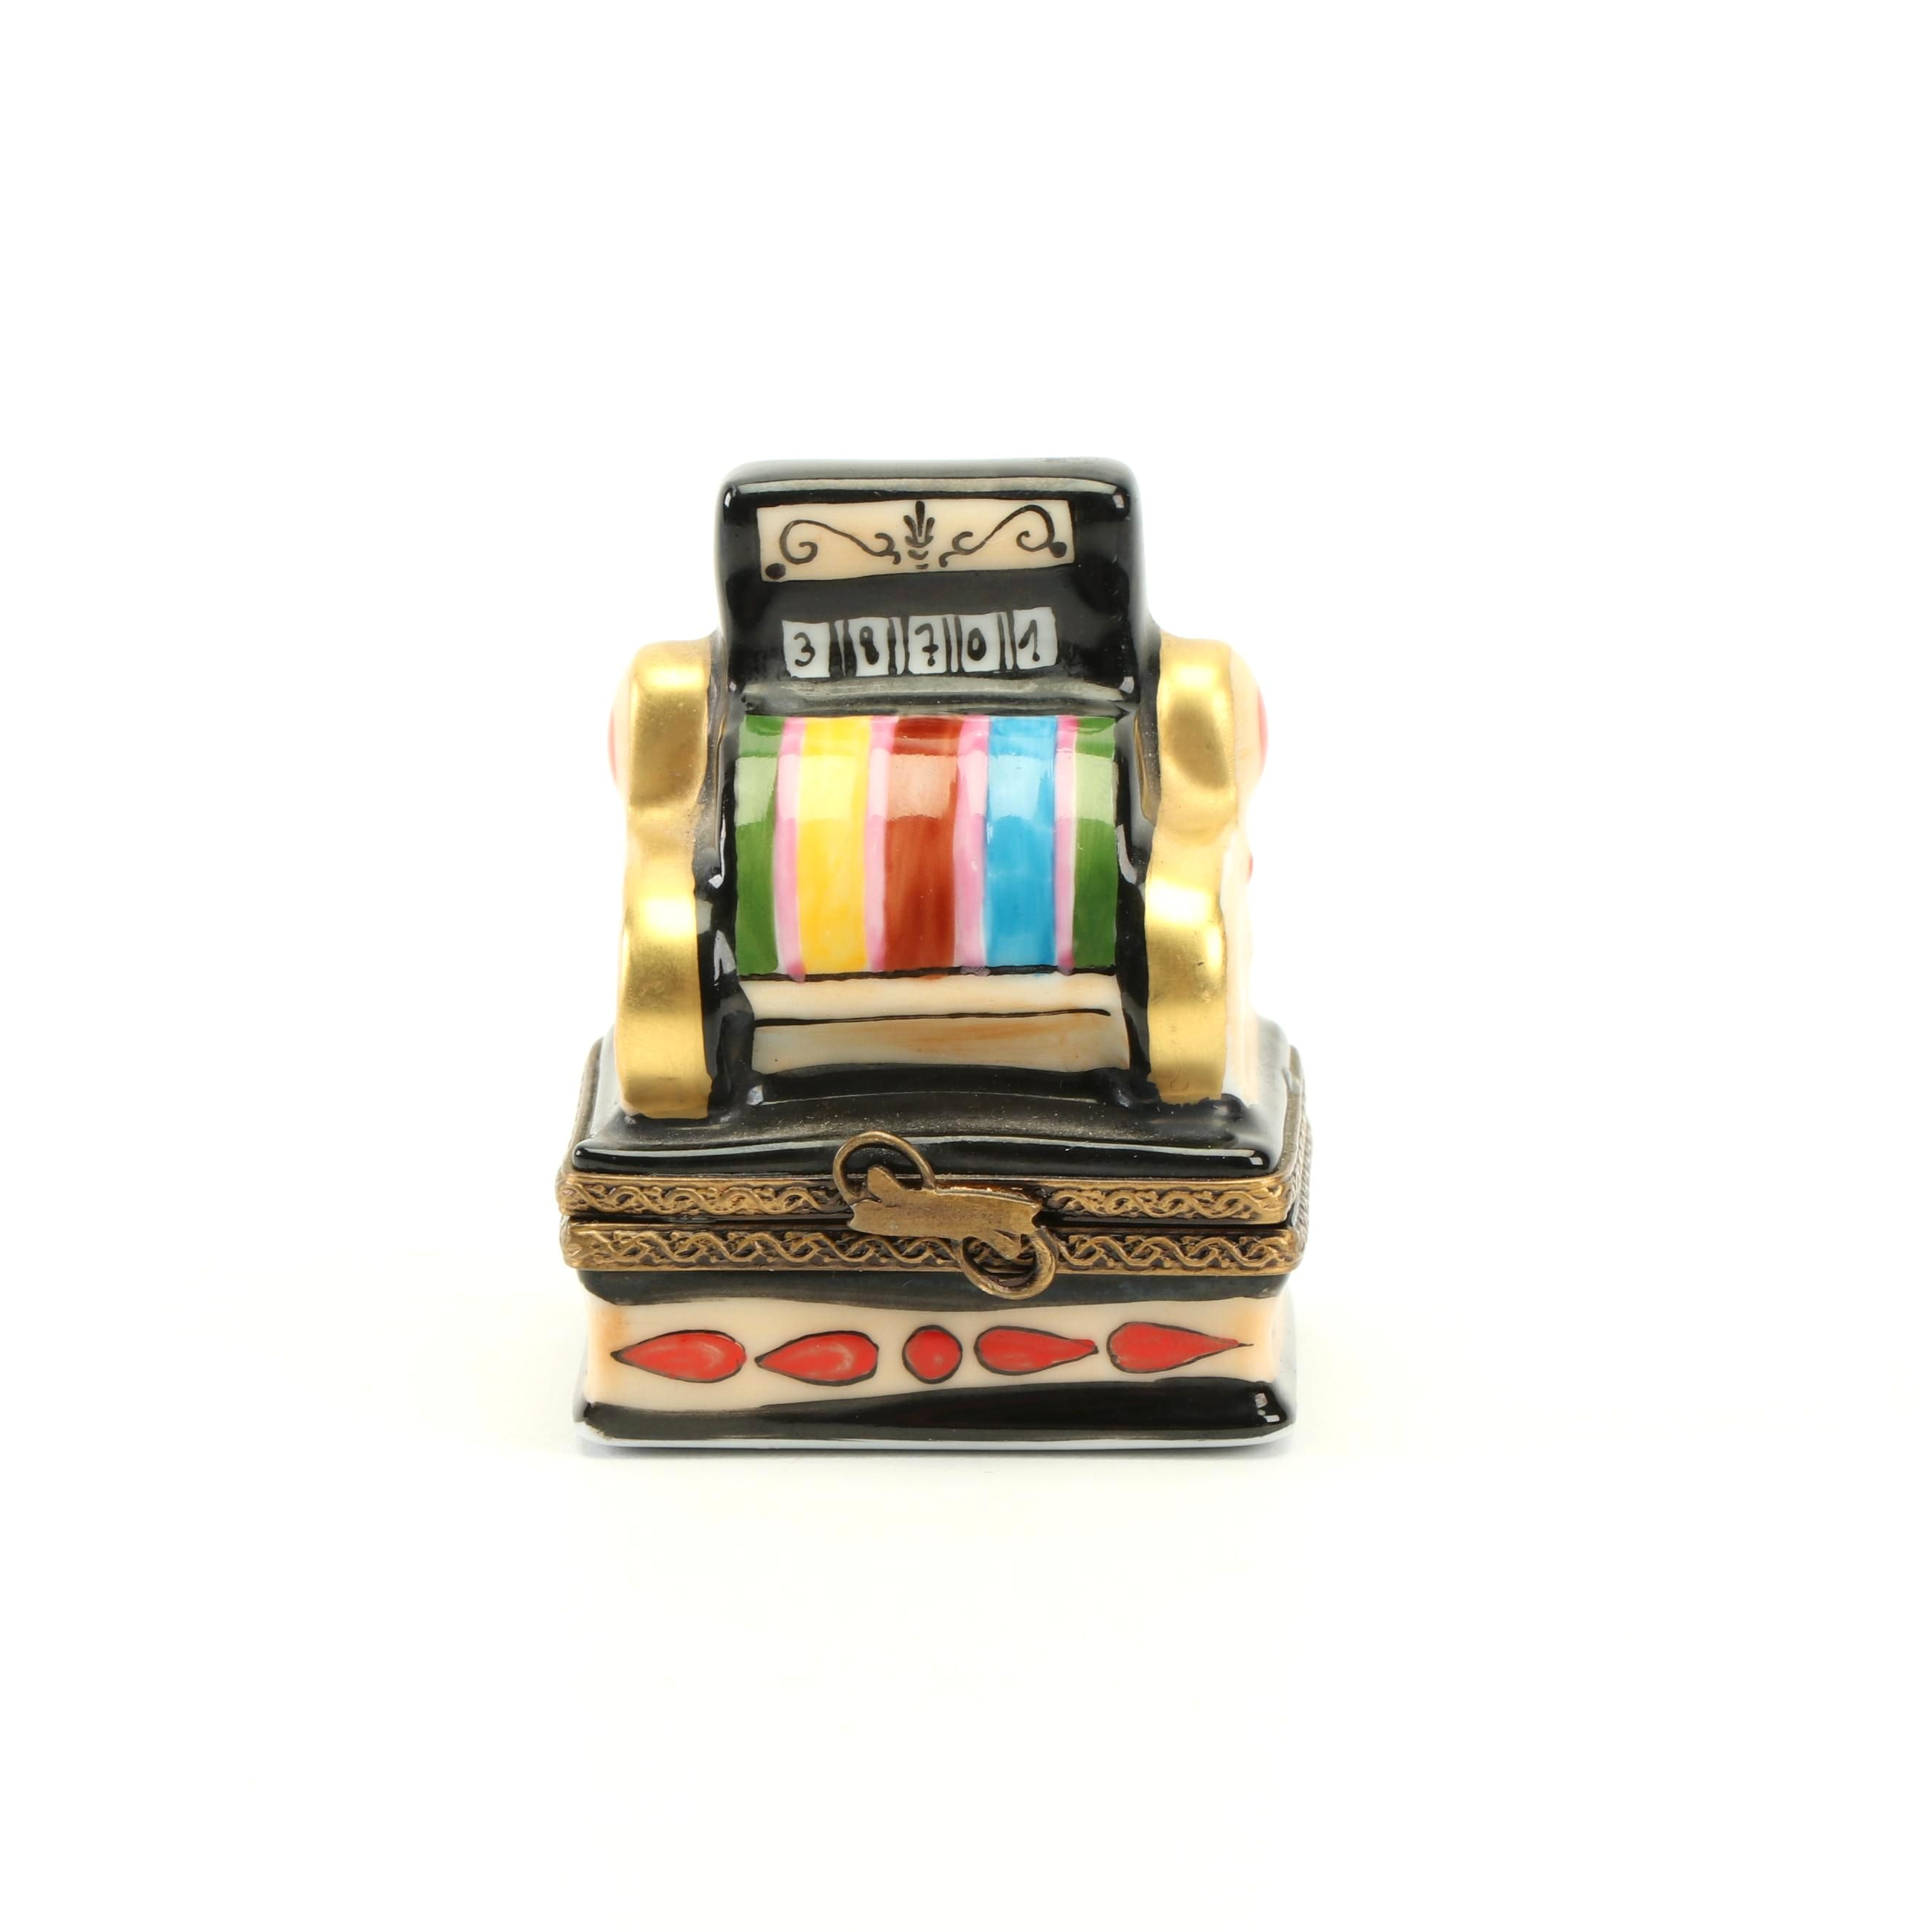 Limoges Hand-Painted Porcelain Cash Register Trinket Box